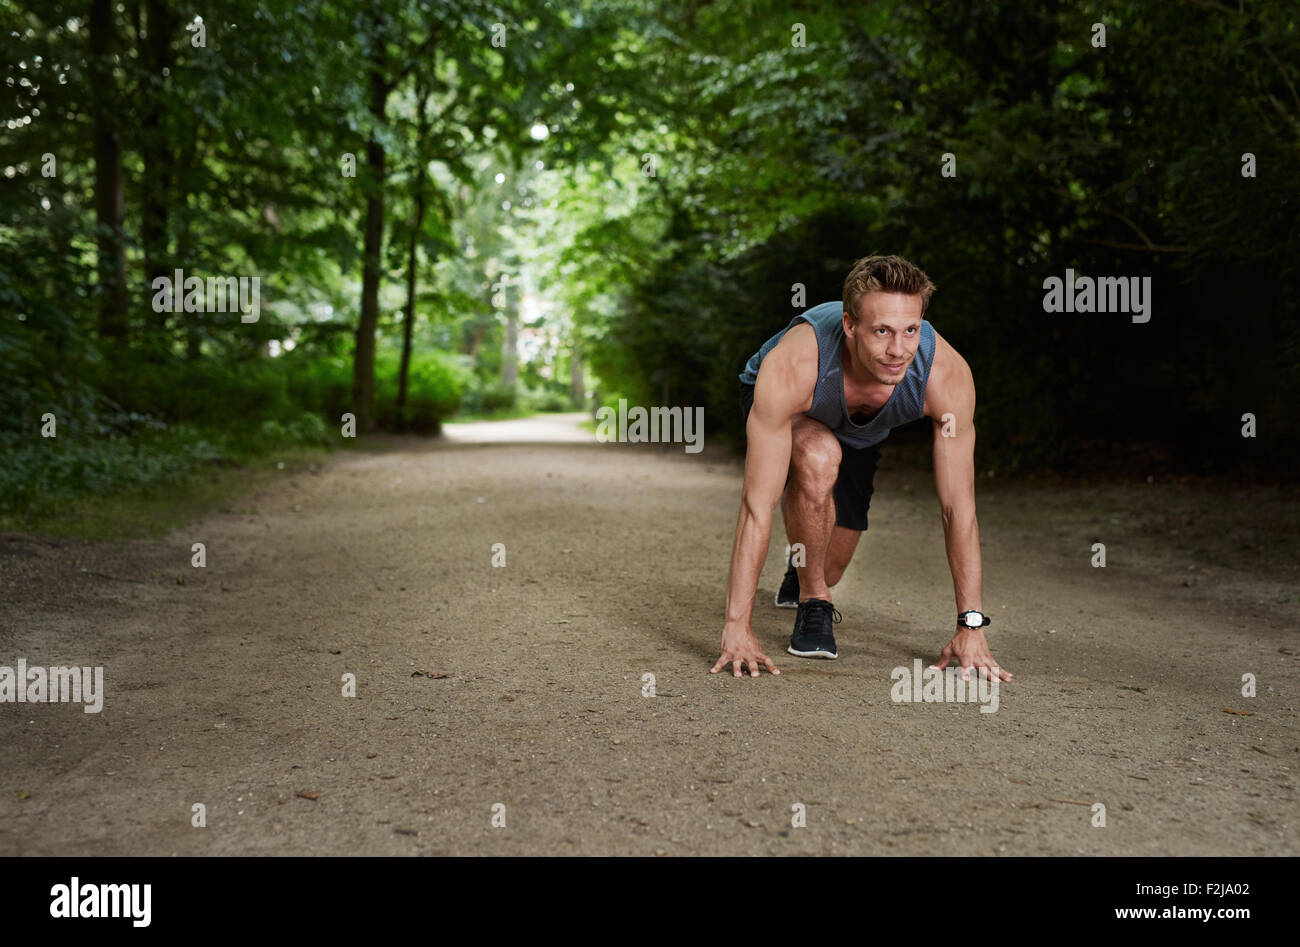 Handsome Athletic Man in Running Start Position and Looking Into the Distance at the Park - Stock Image